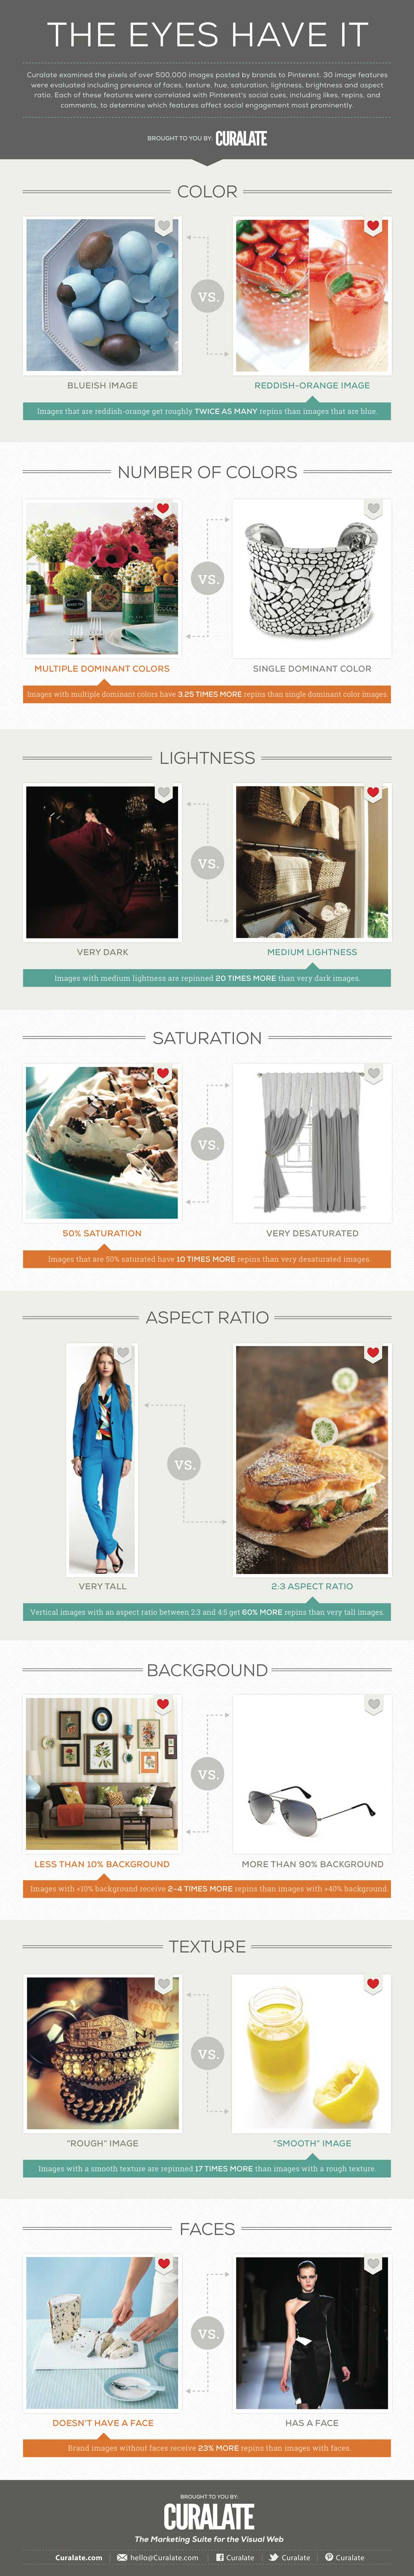 The-Eyes-Have-It-Pinterest-Infographic2